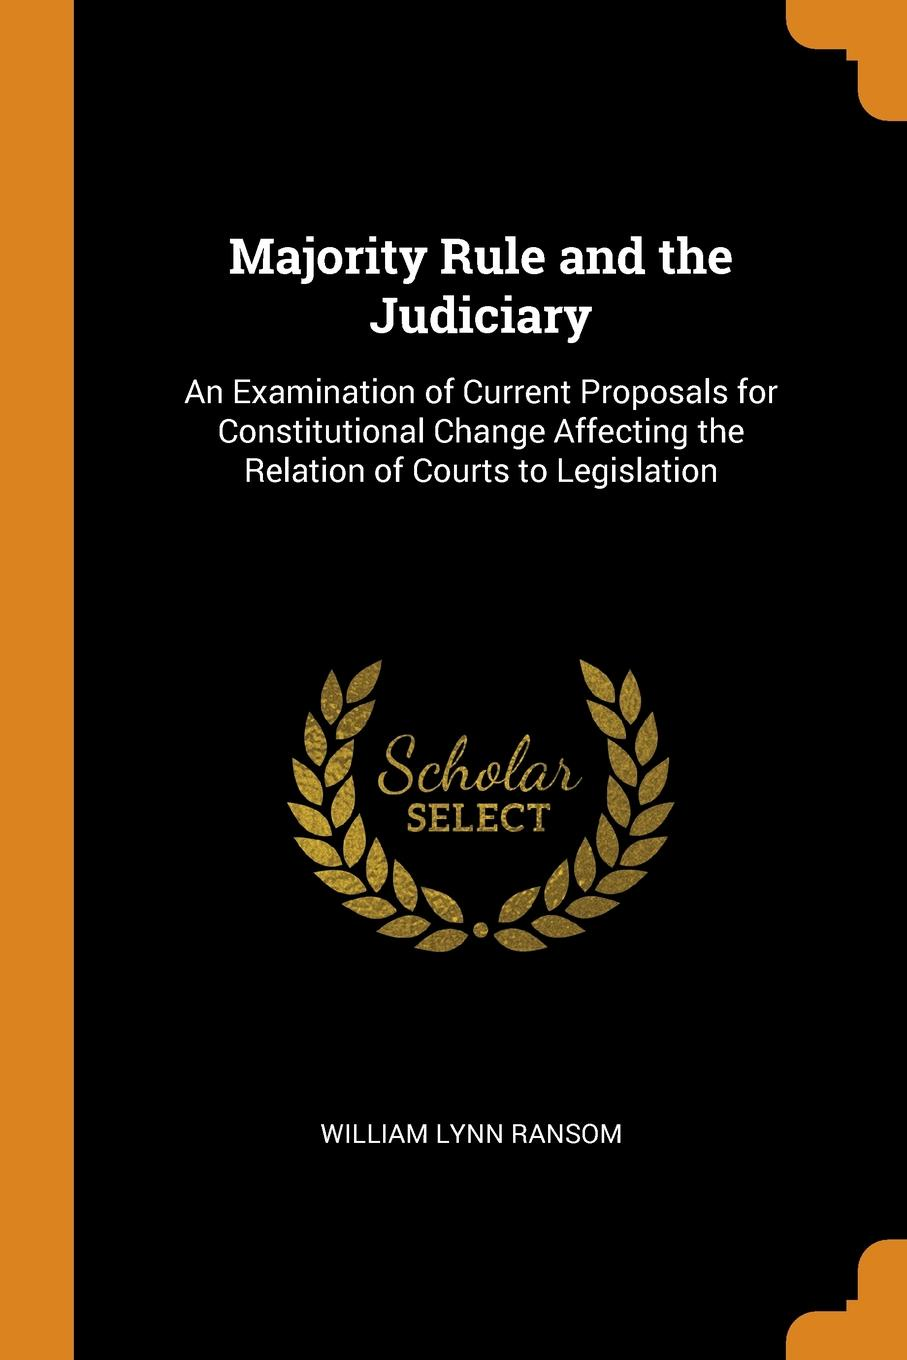 Majority Rule and the Judiciary. An Examination of Current Proposals for Constitutional Change Affecting the Relation of Courts to Legislation. William Lynn Ransom